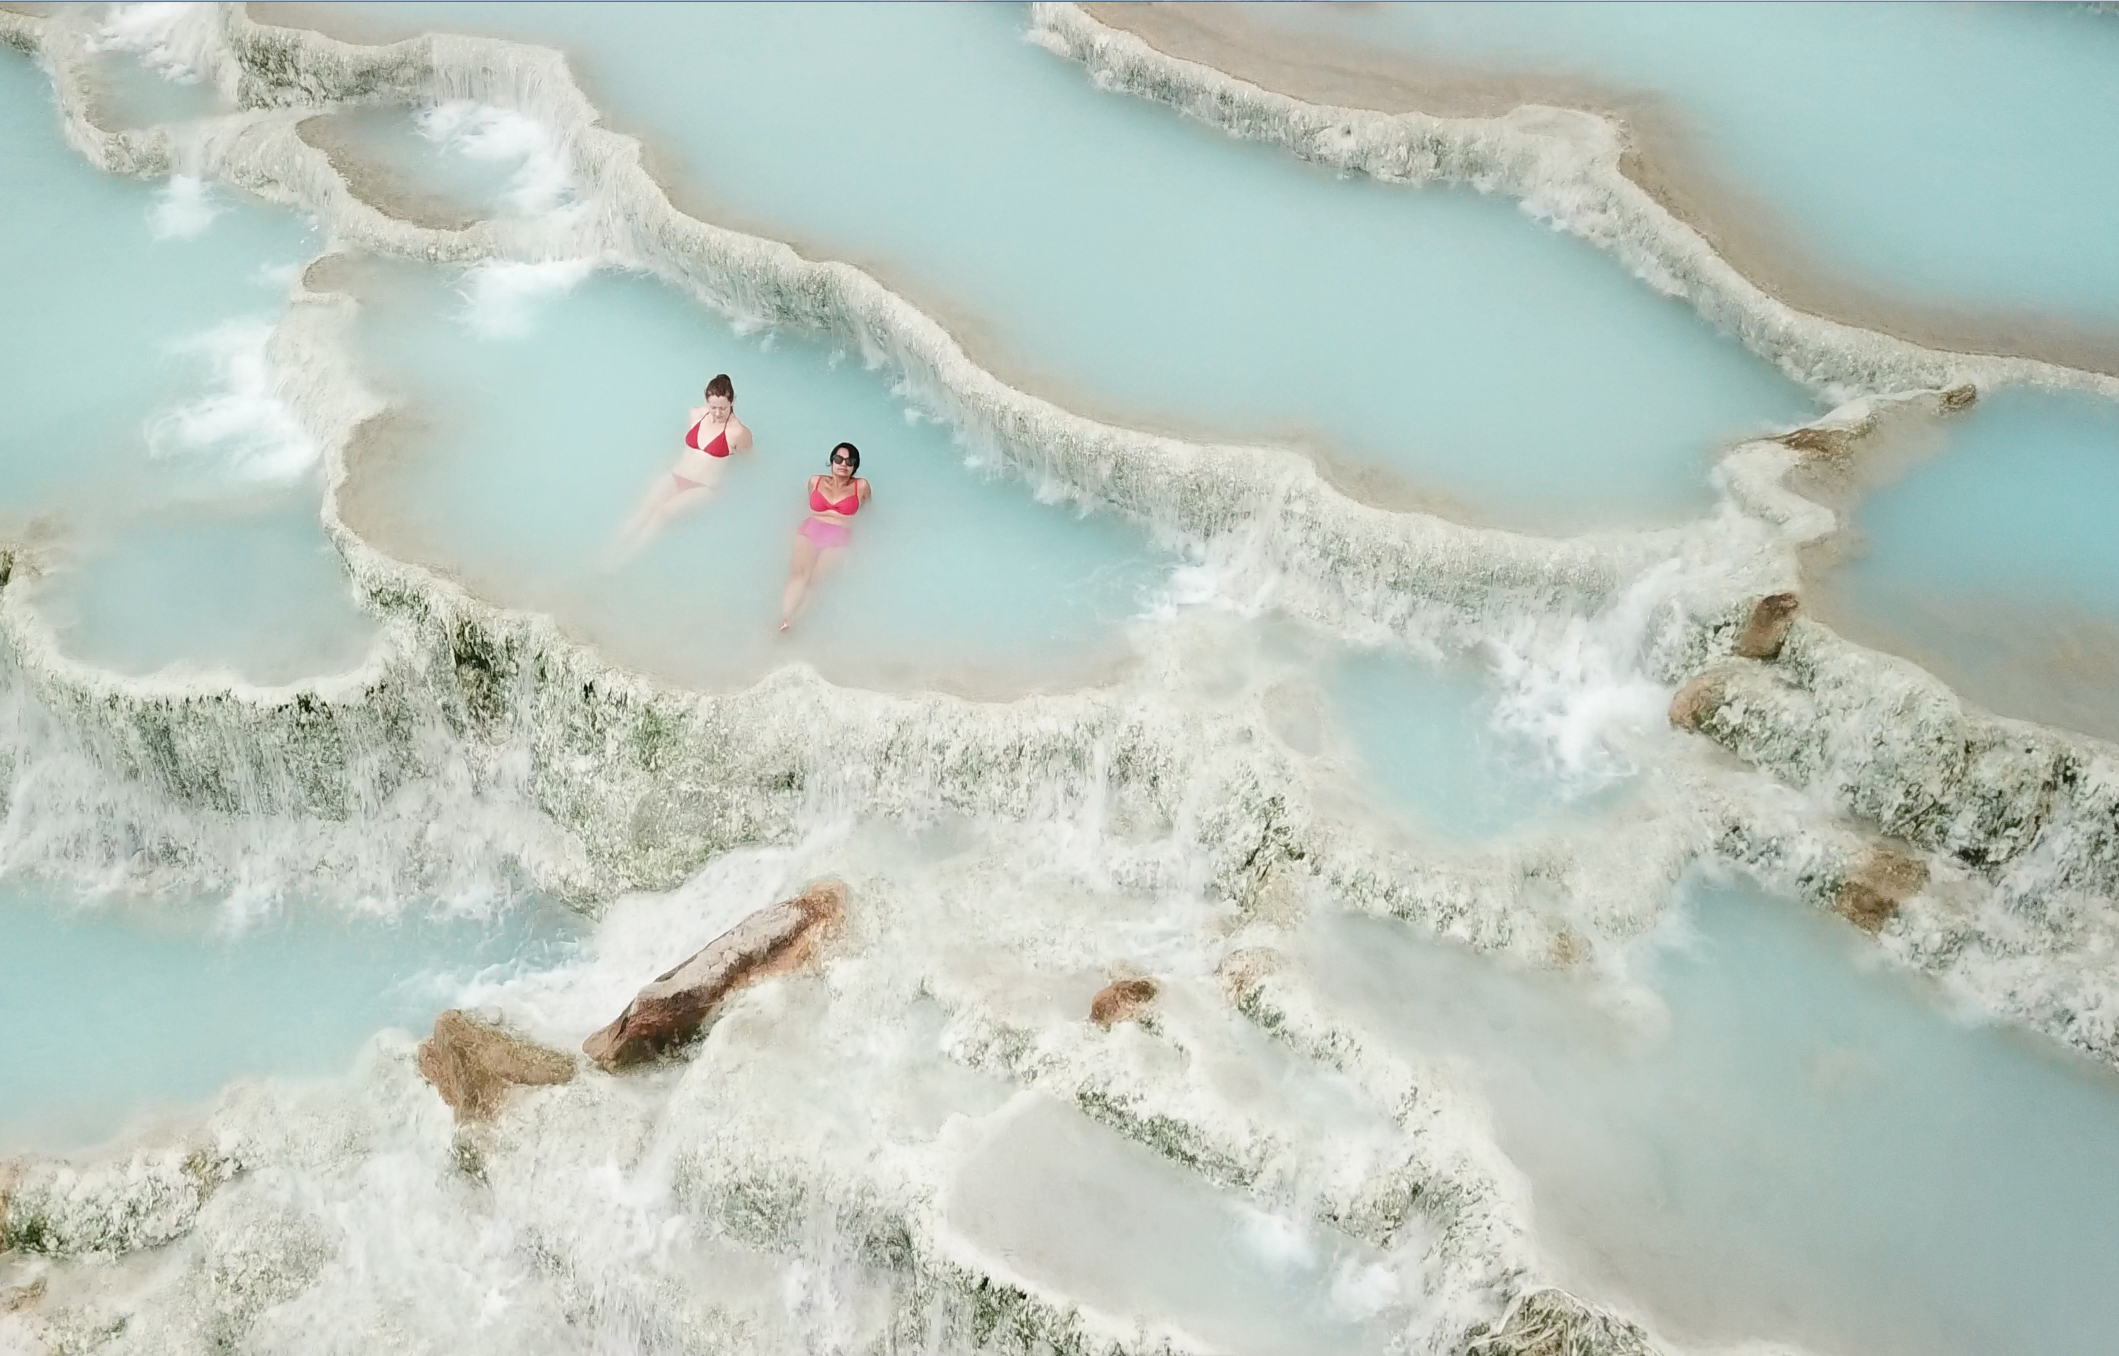 Cascate del Mulino geothermal spa in Saturnia, Tuscany.